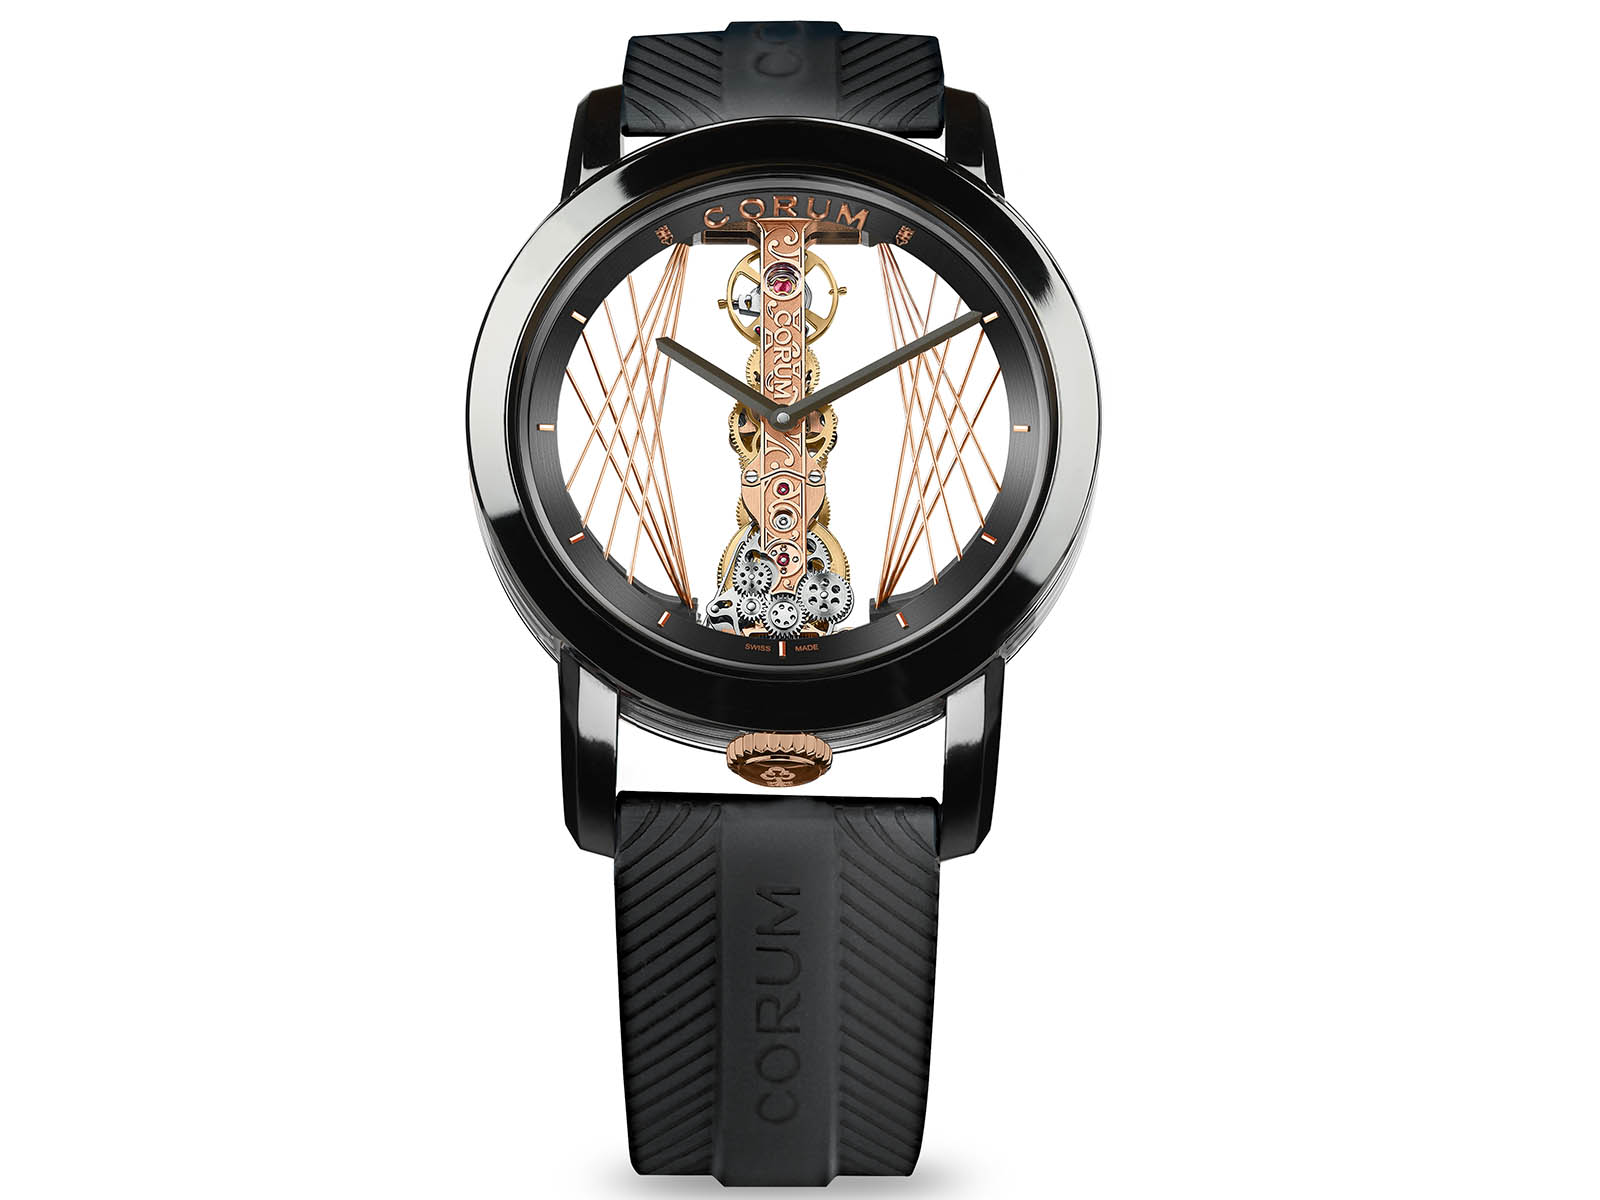 b113-03951-corum-golden-bridge-round-43-art-deco-1.jpg